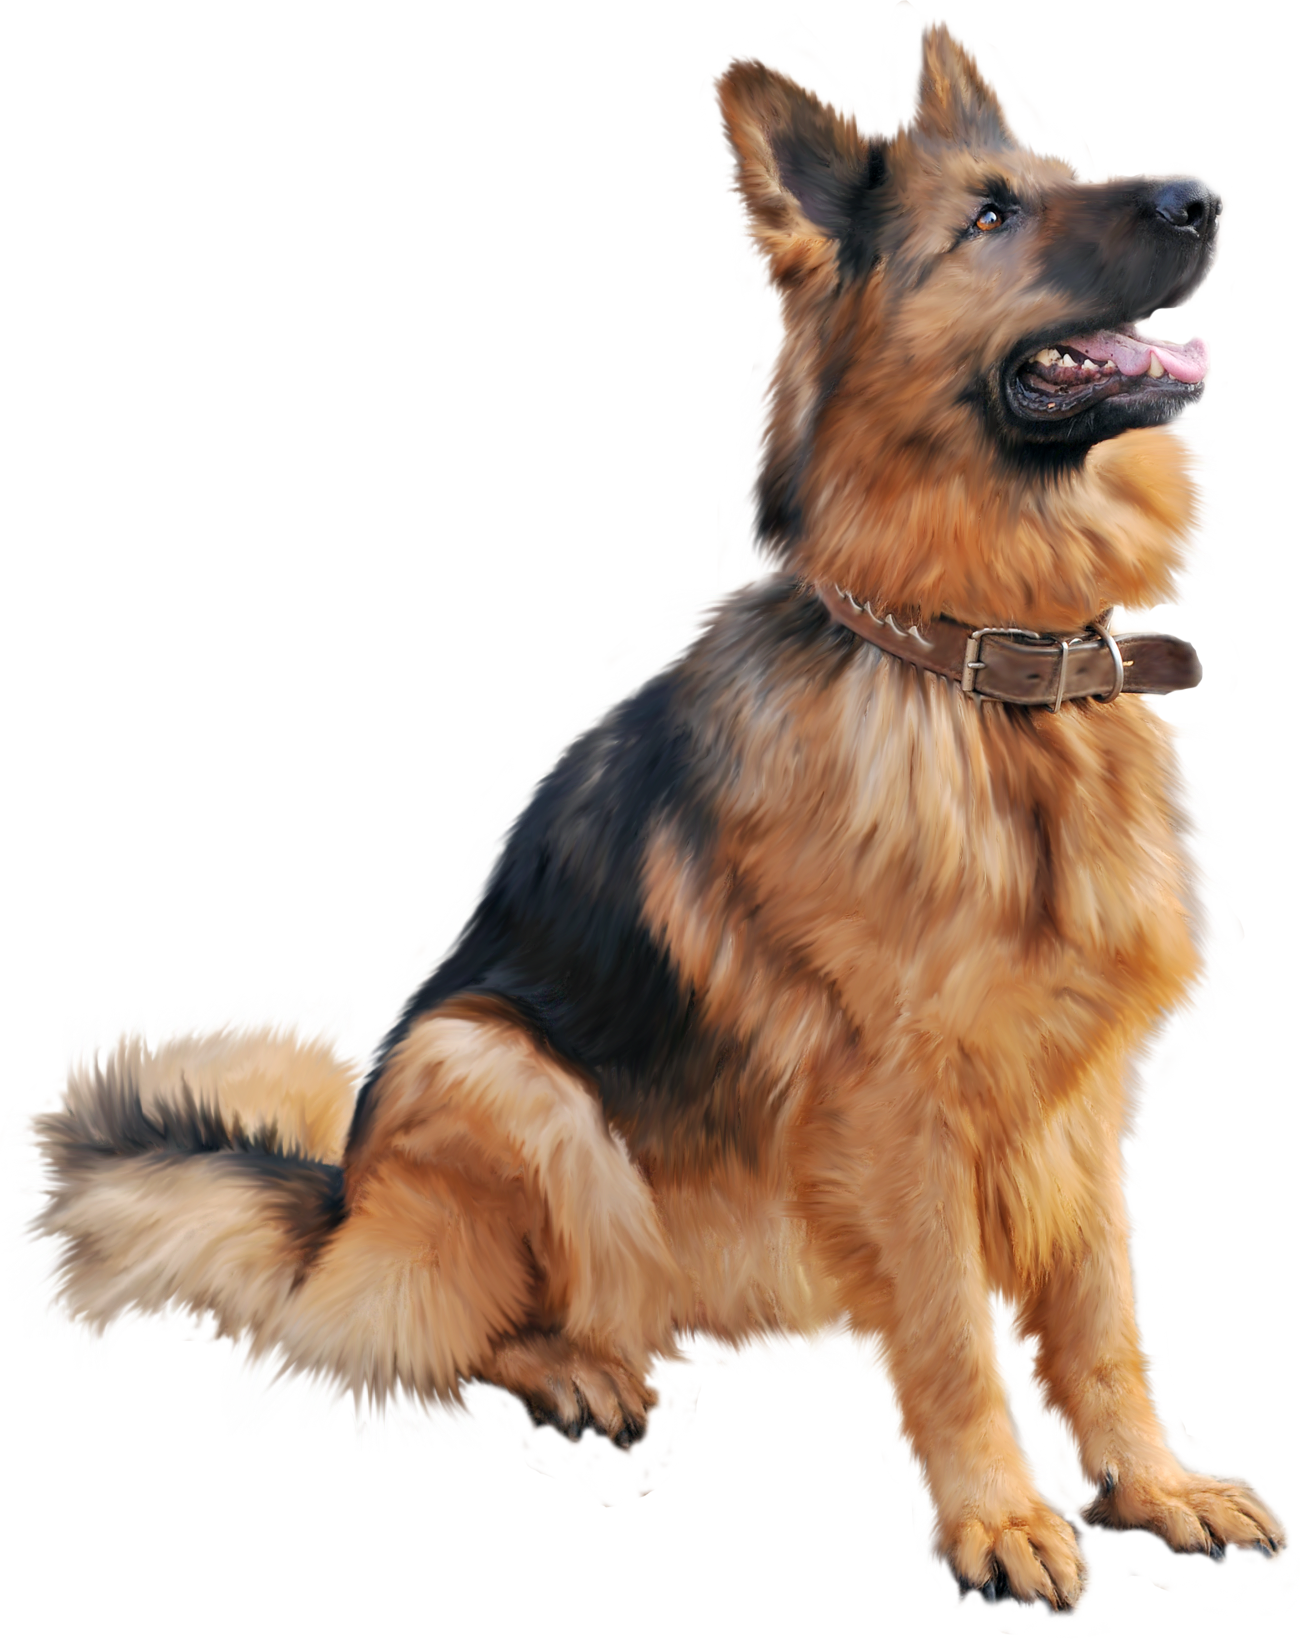 Dog png image, dogs, puppy pictures free download - Dog PNG